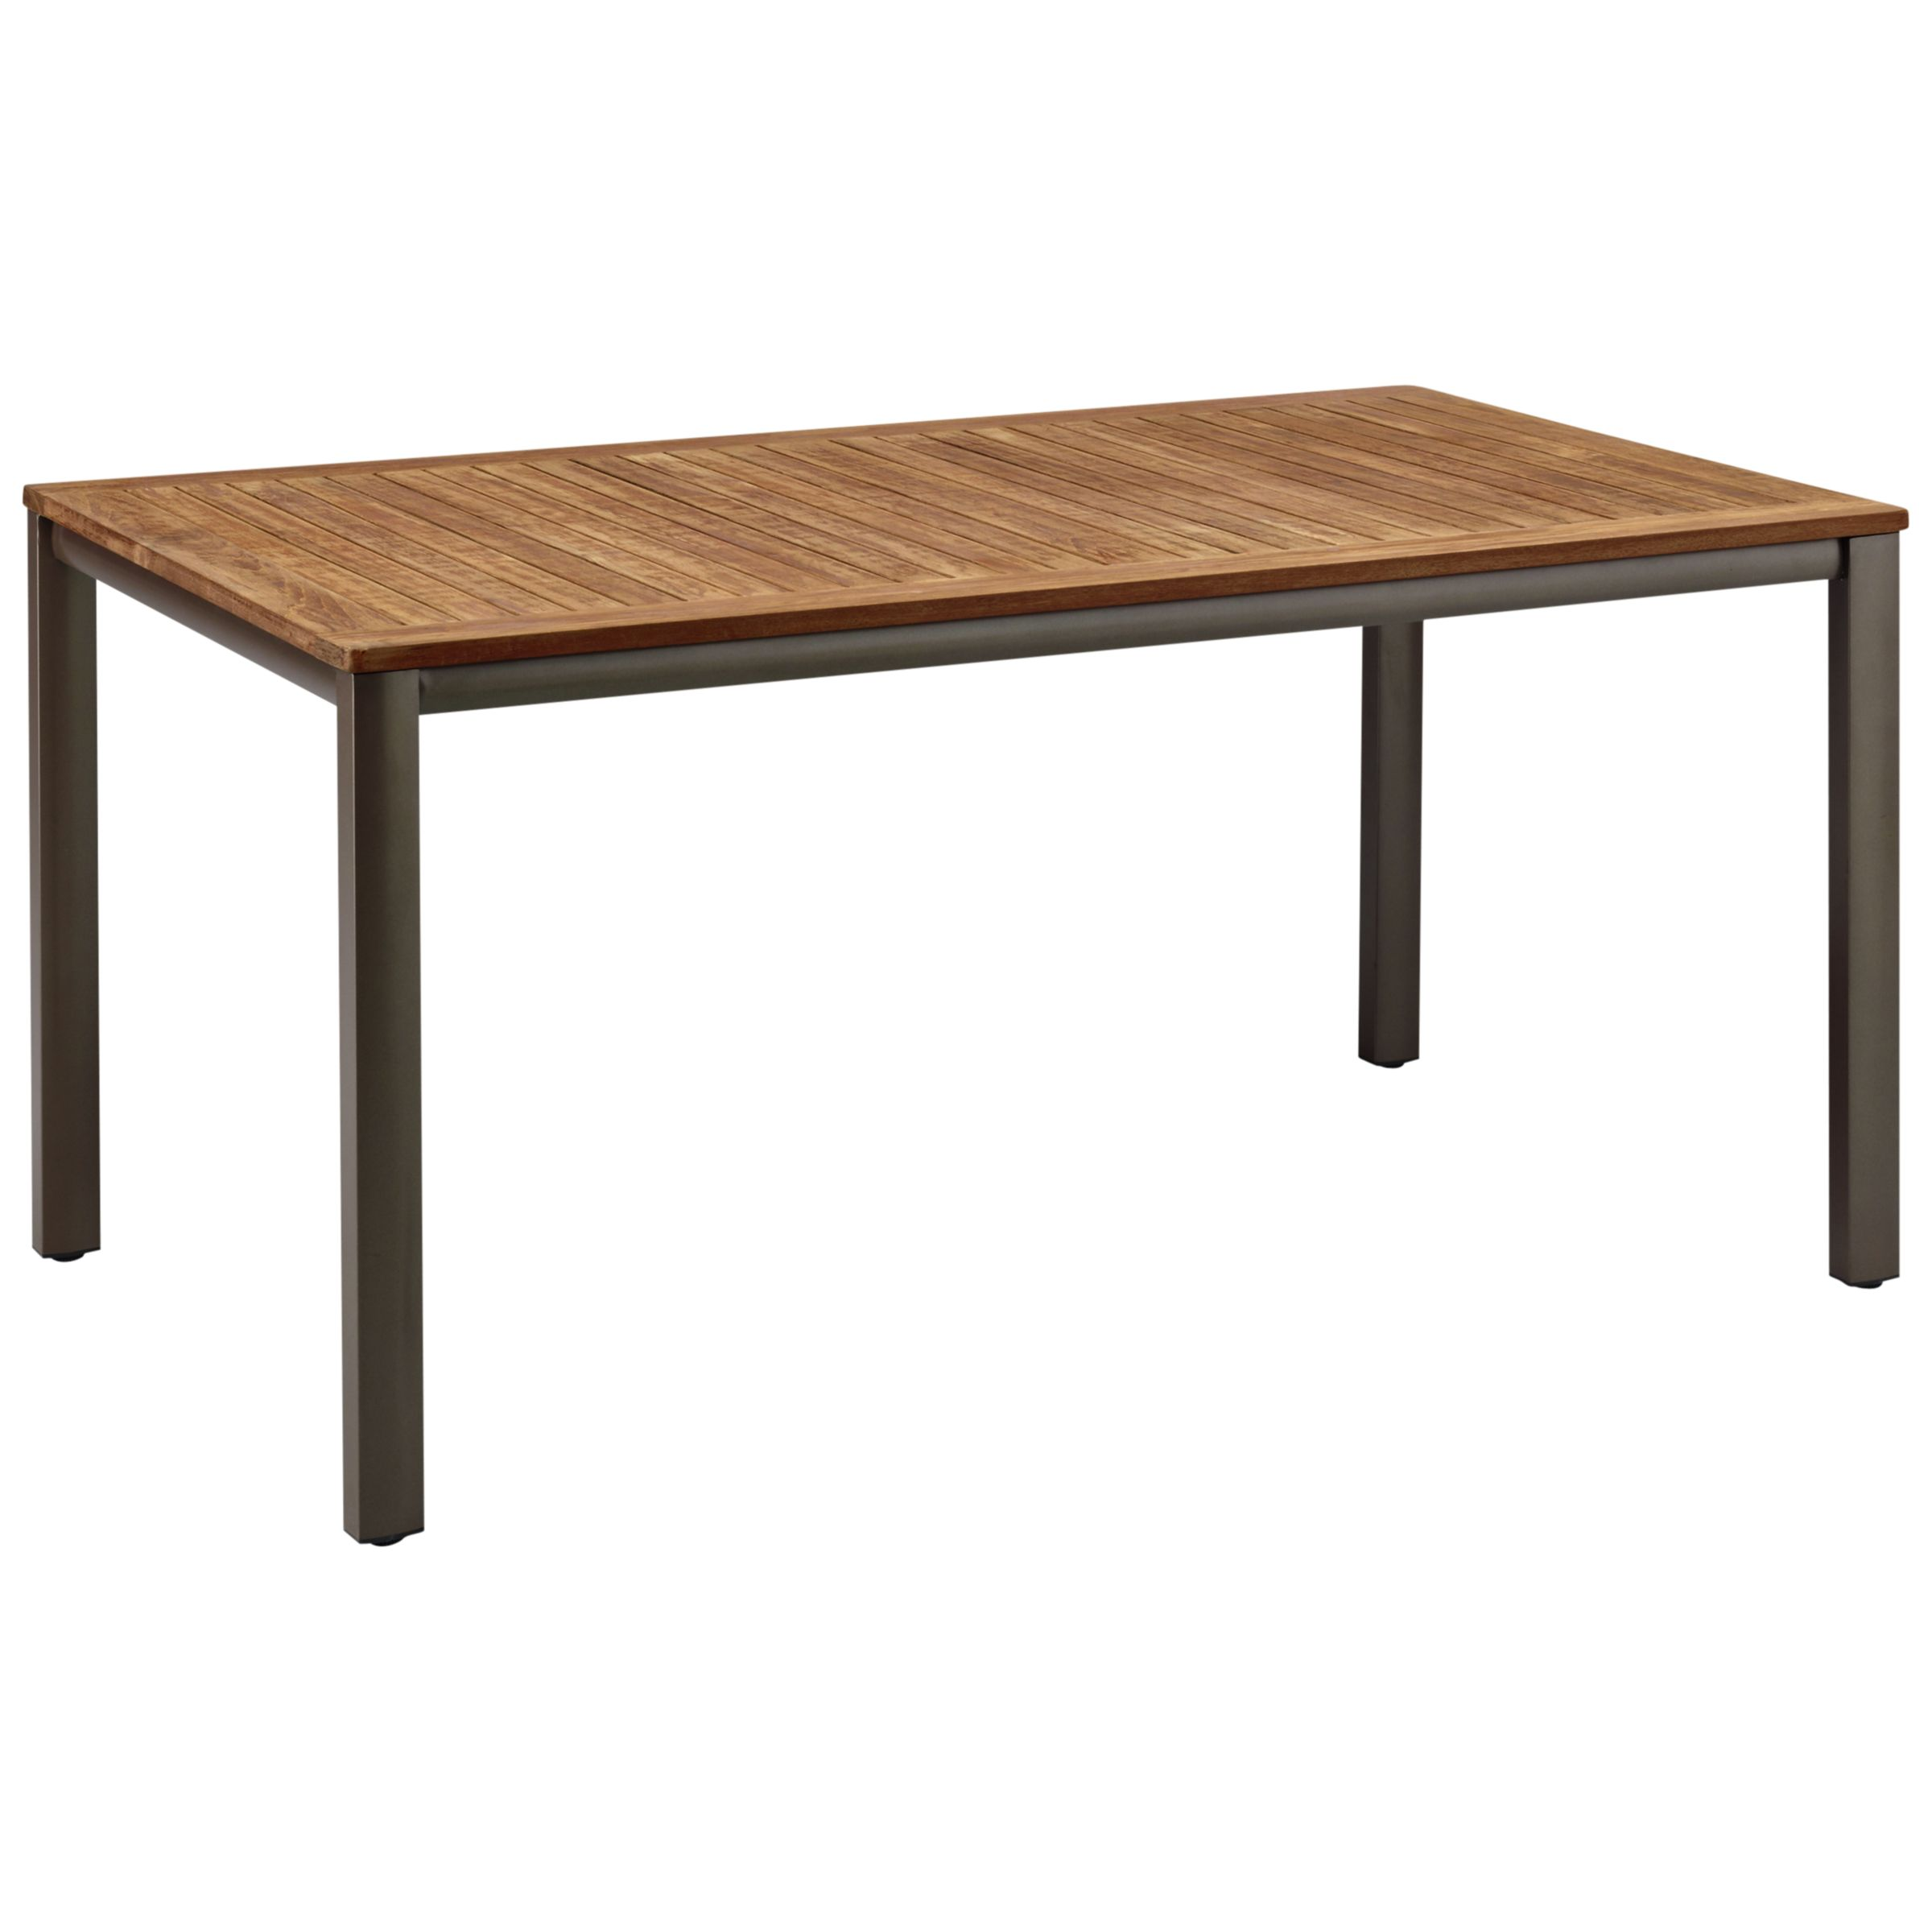 Kettler Grenada 6 Seater Rectangular Outdoor Dining Table